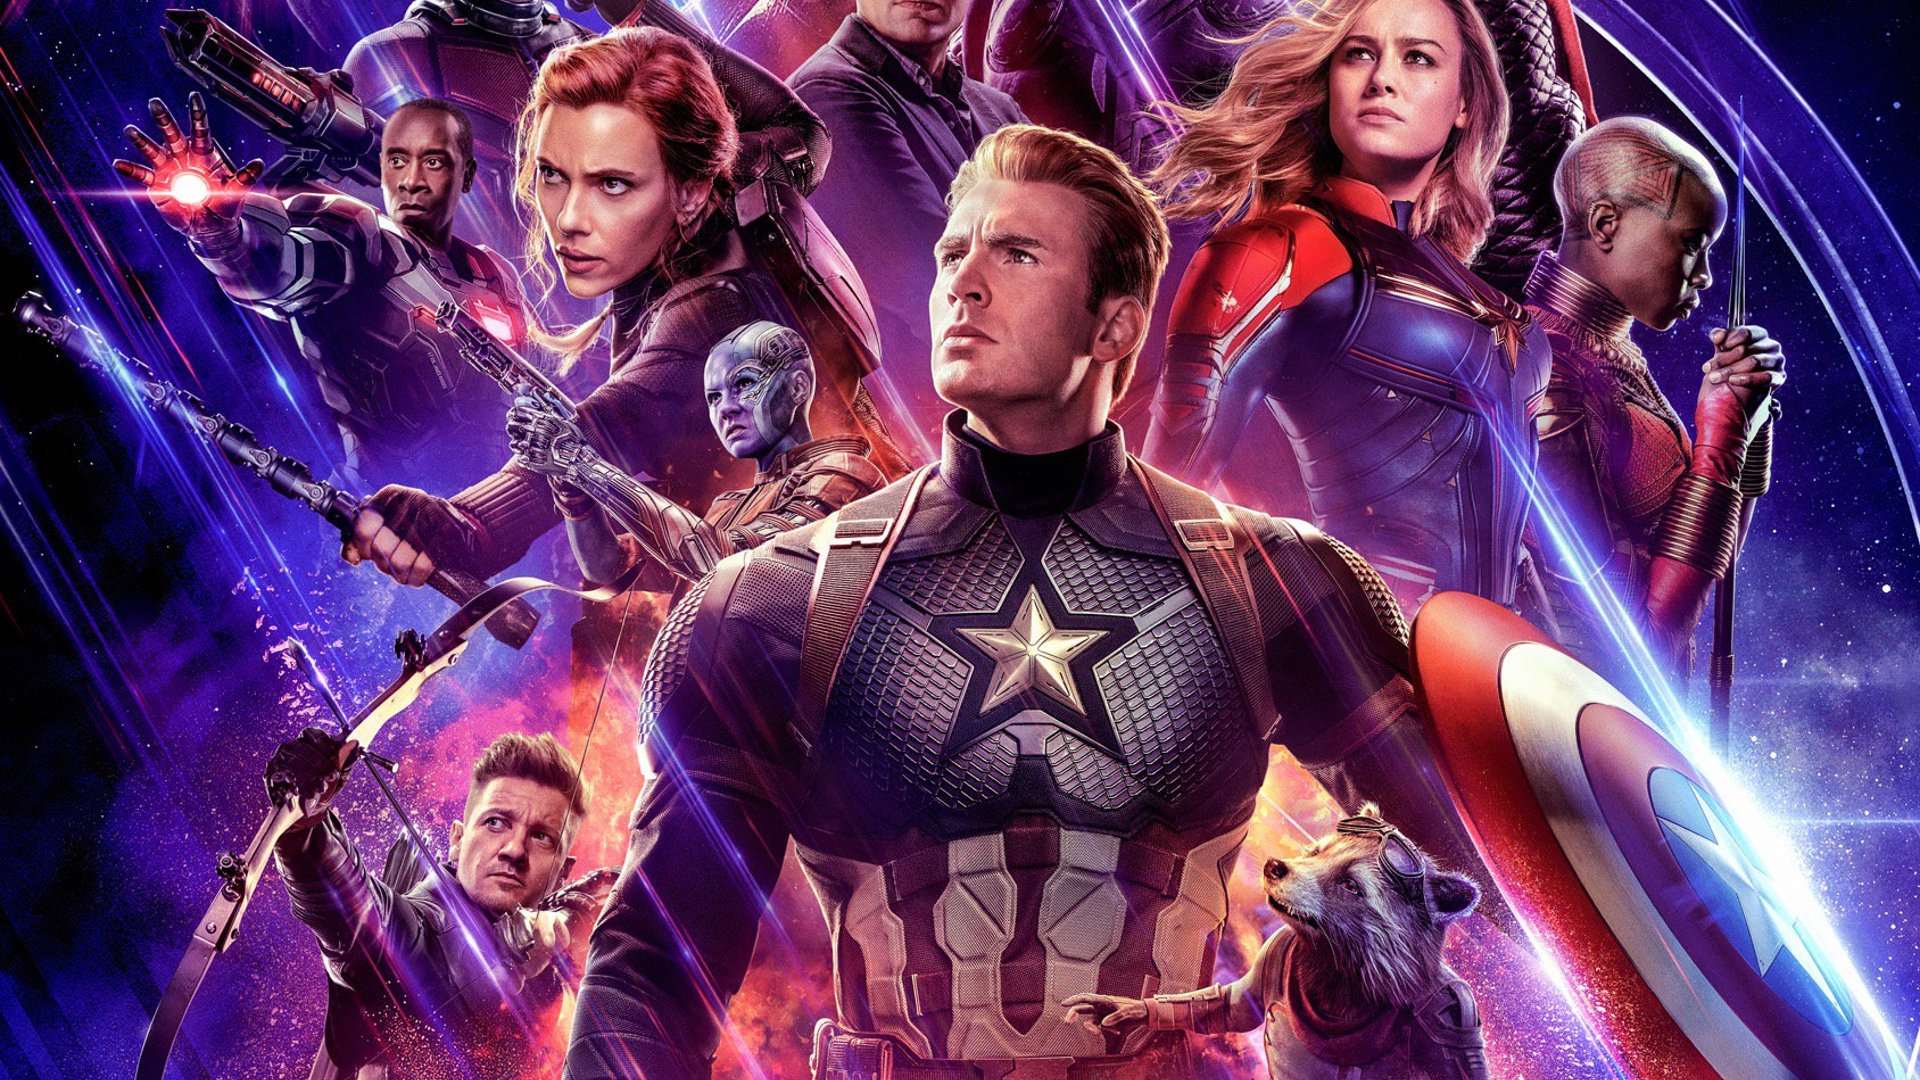 Download 600+ Wallpaper Avengers Endgame 4k Pc